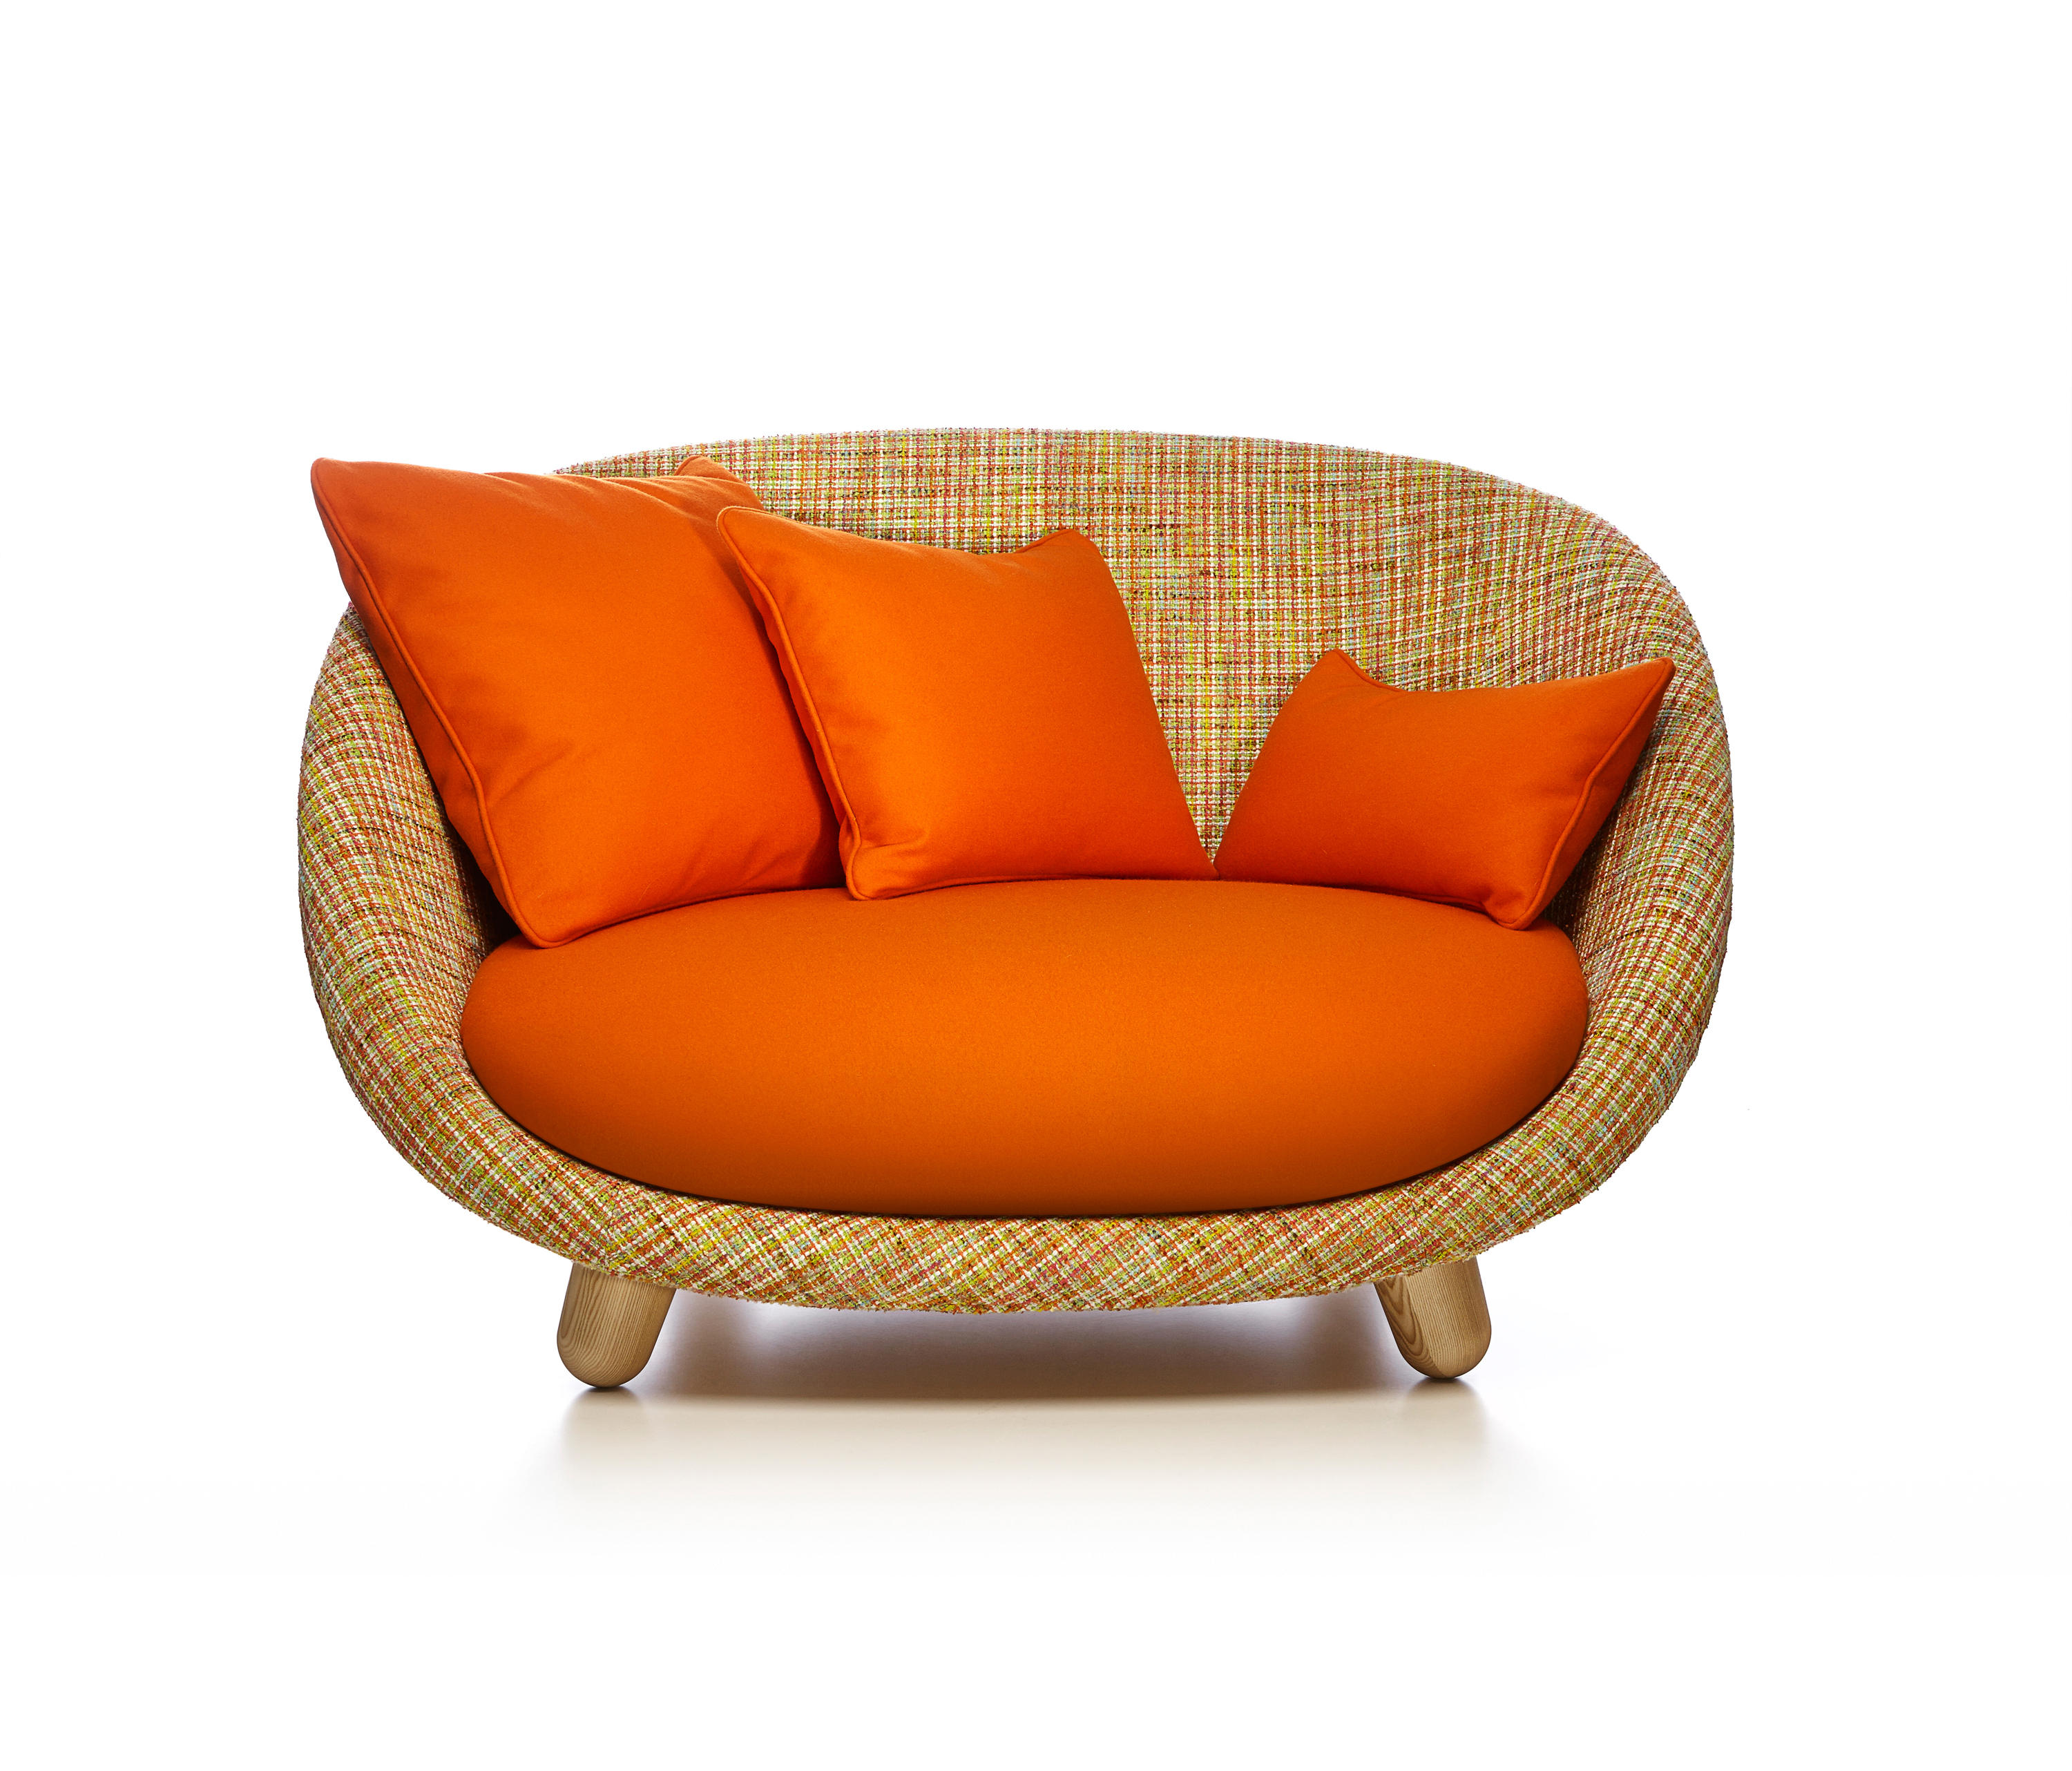 LOVE SOFA Lounge chairs from moooi